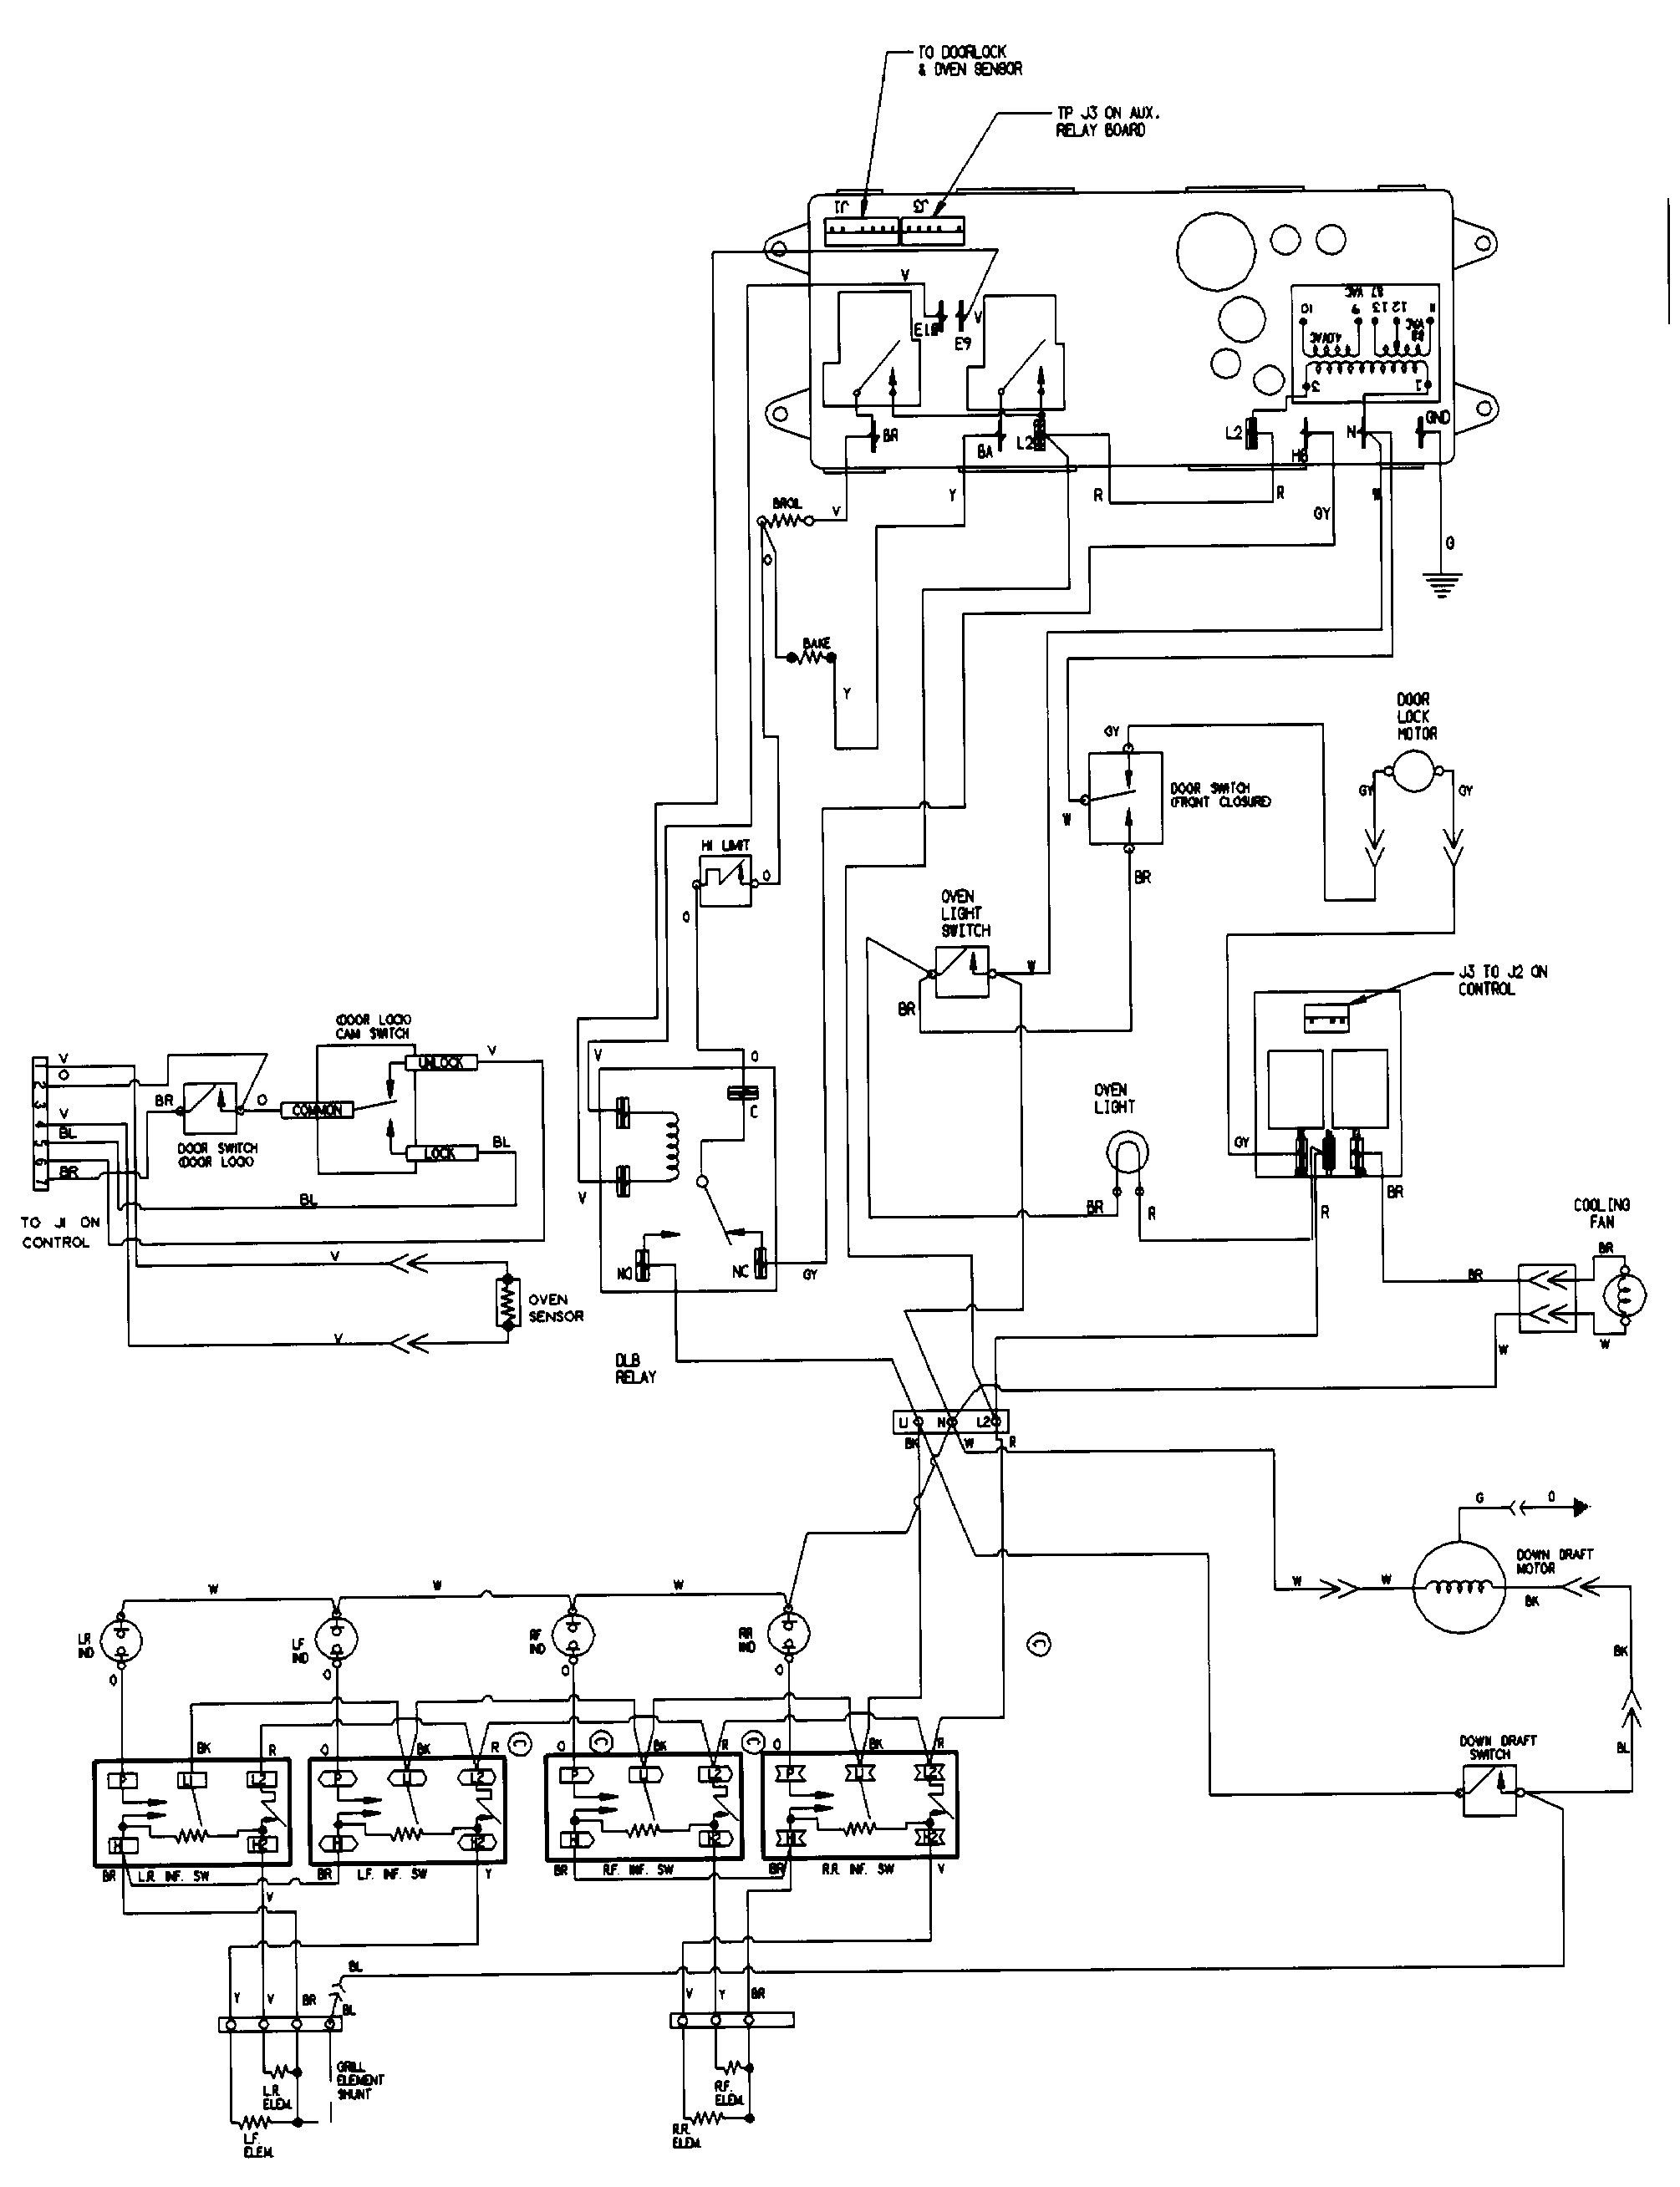 23 Complex Wiring Diagram Online For You Diagram Lincoln Town Car Schematic Drawing